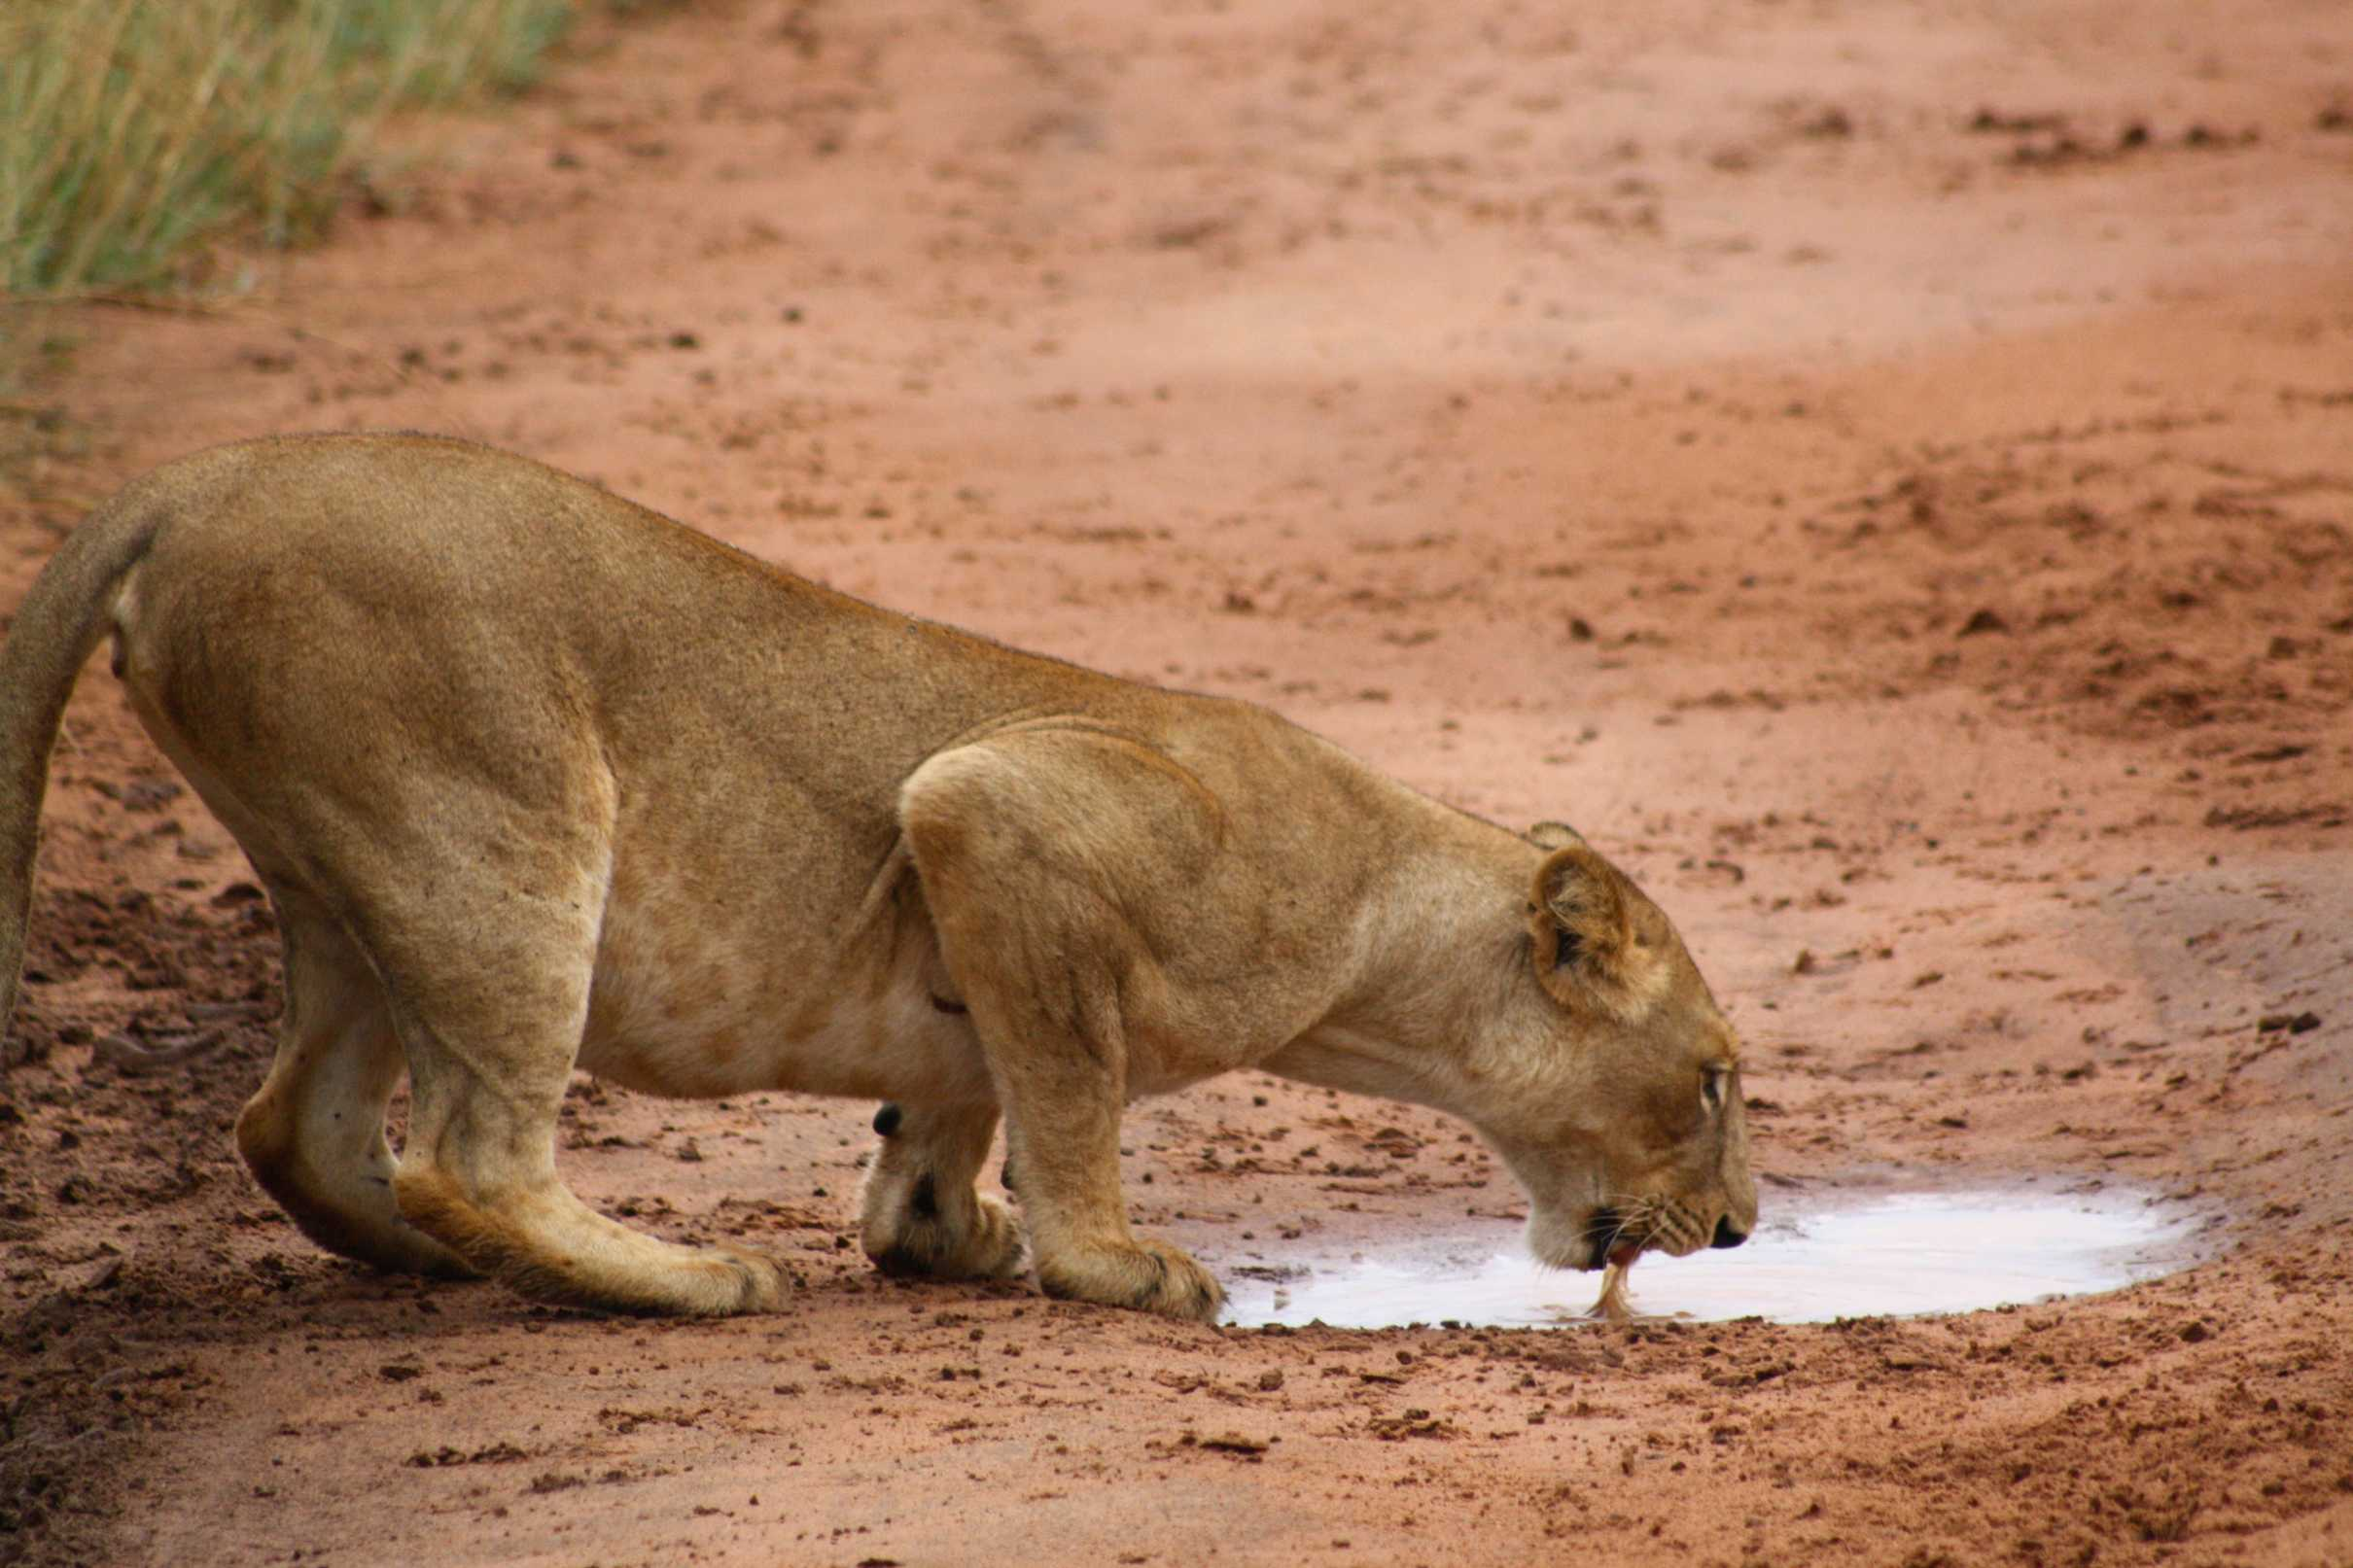 A lioness drinks from a puddle, Murchison Falls National Park